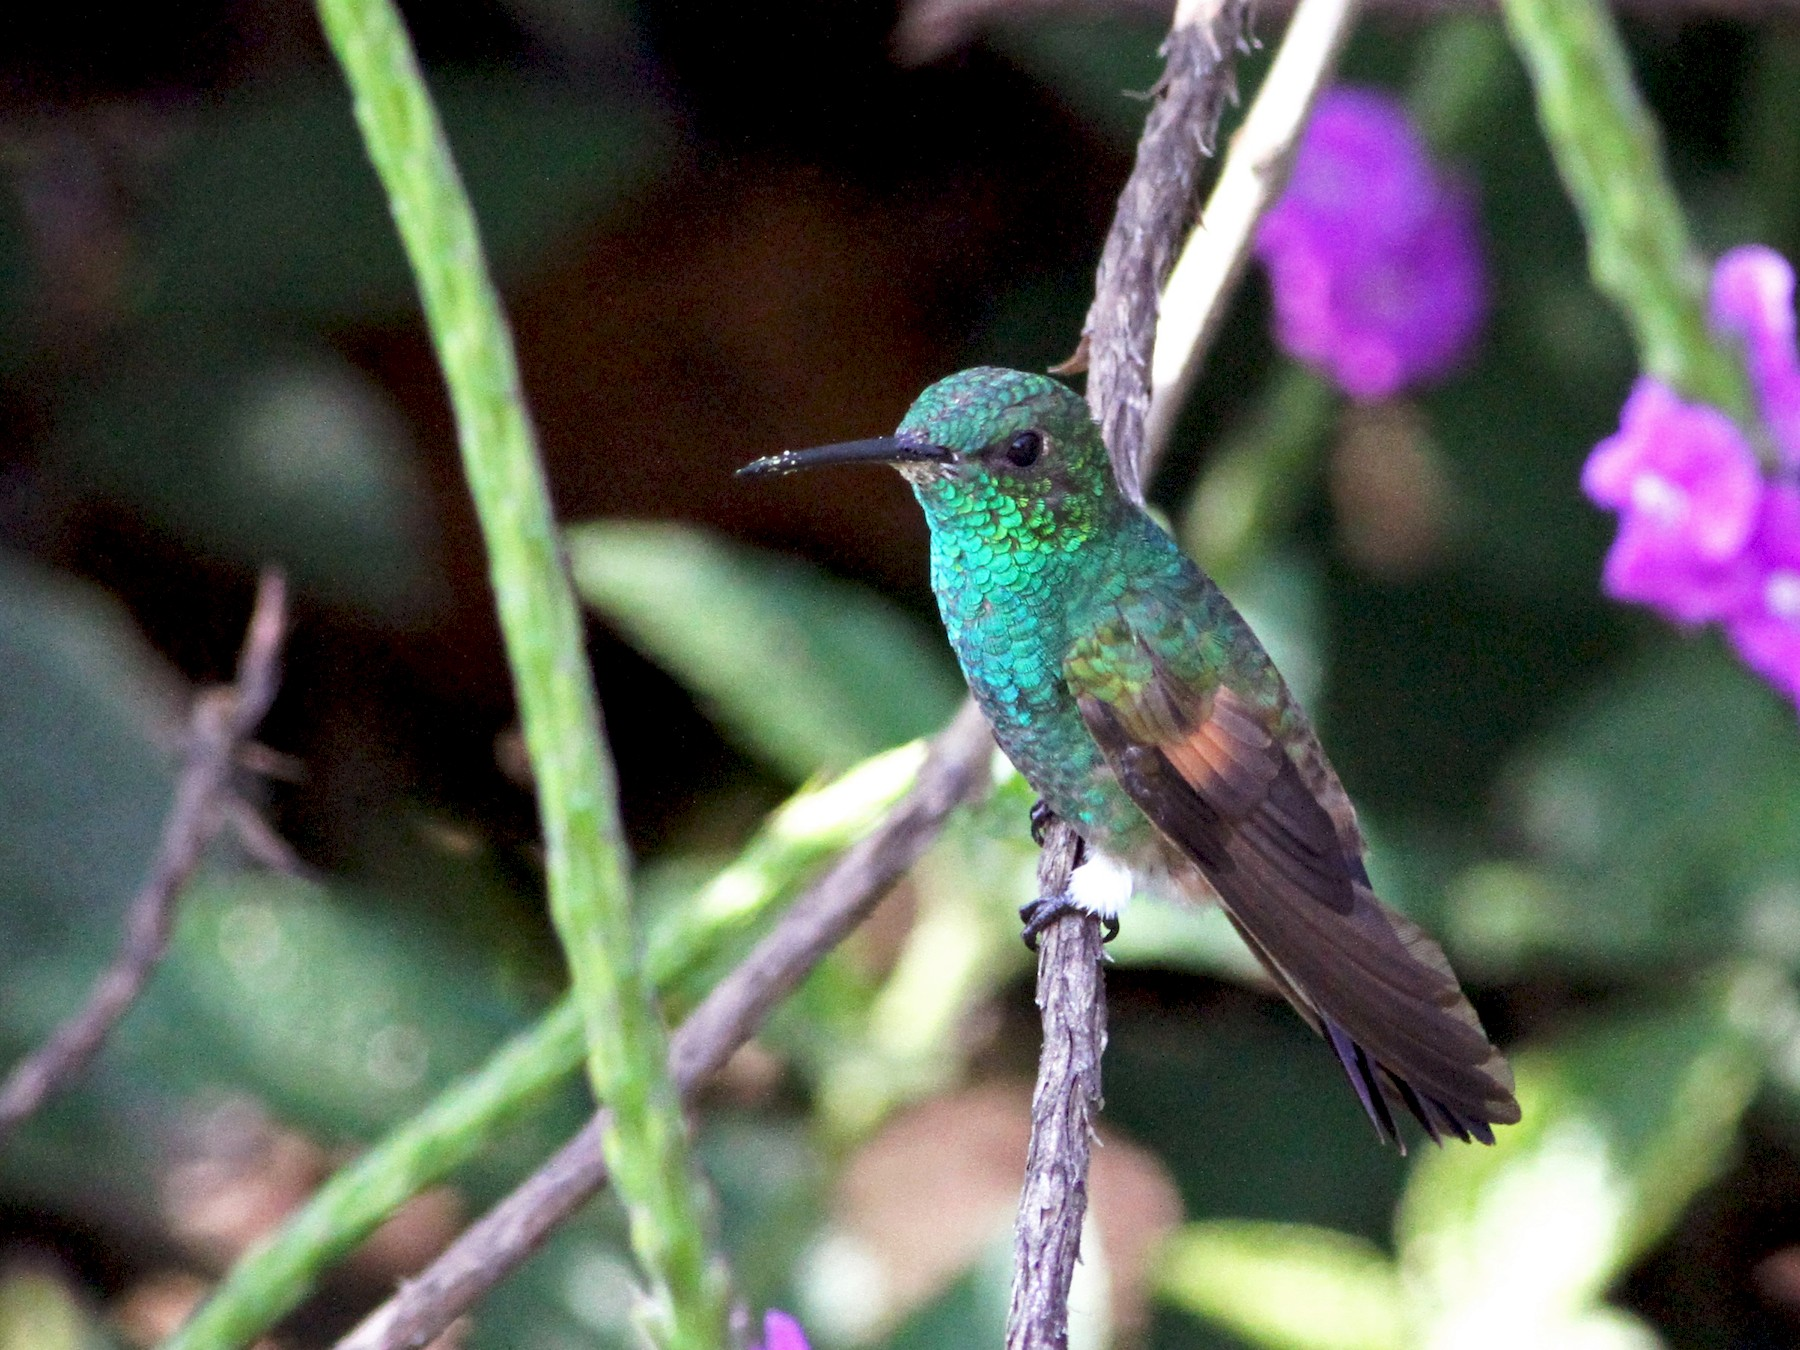 Blue-tailed Hummingbird - Georges Duriaux